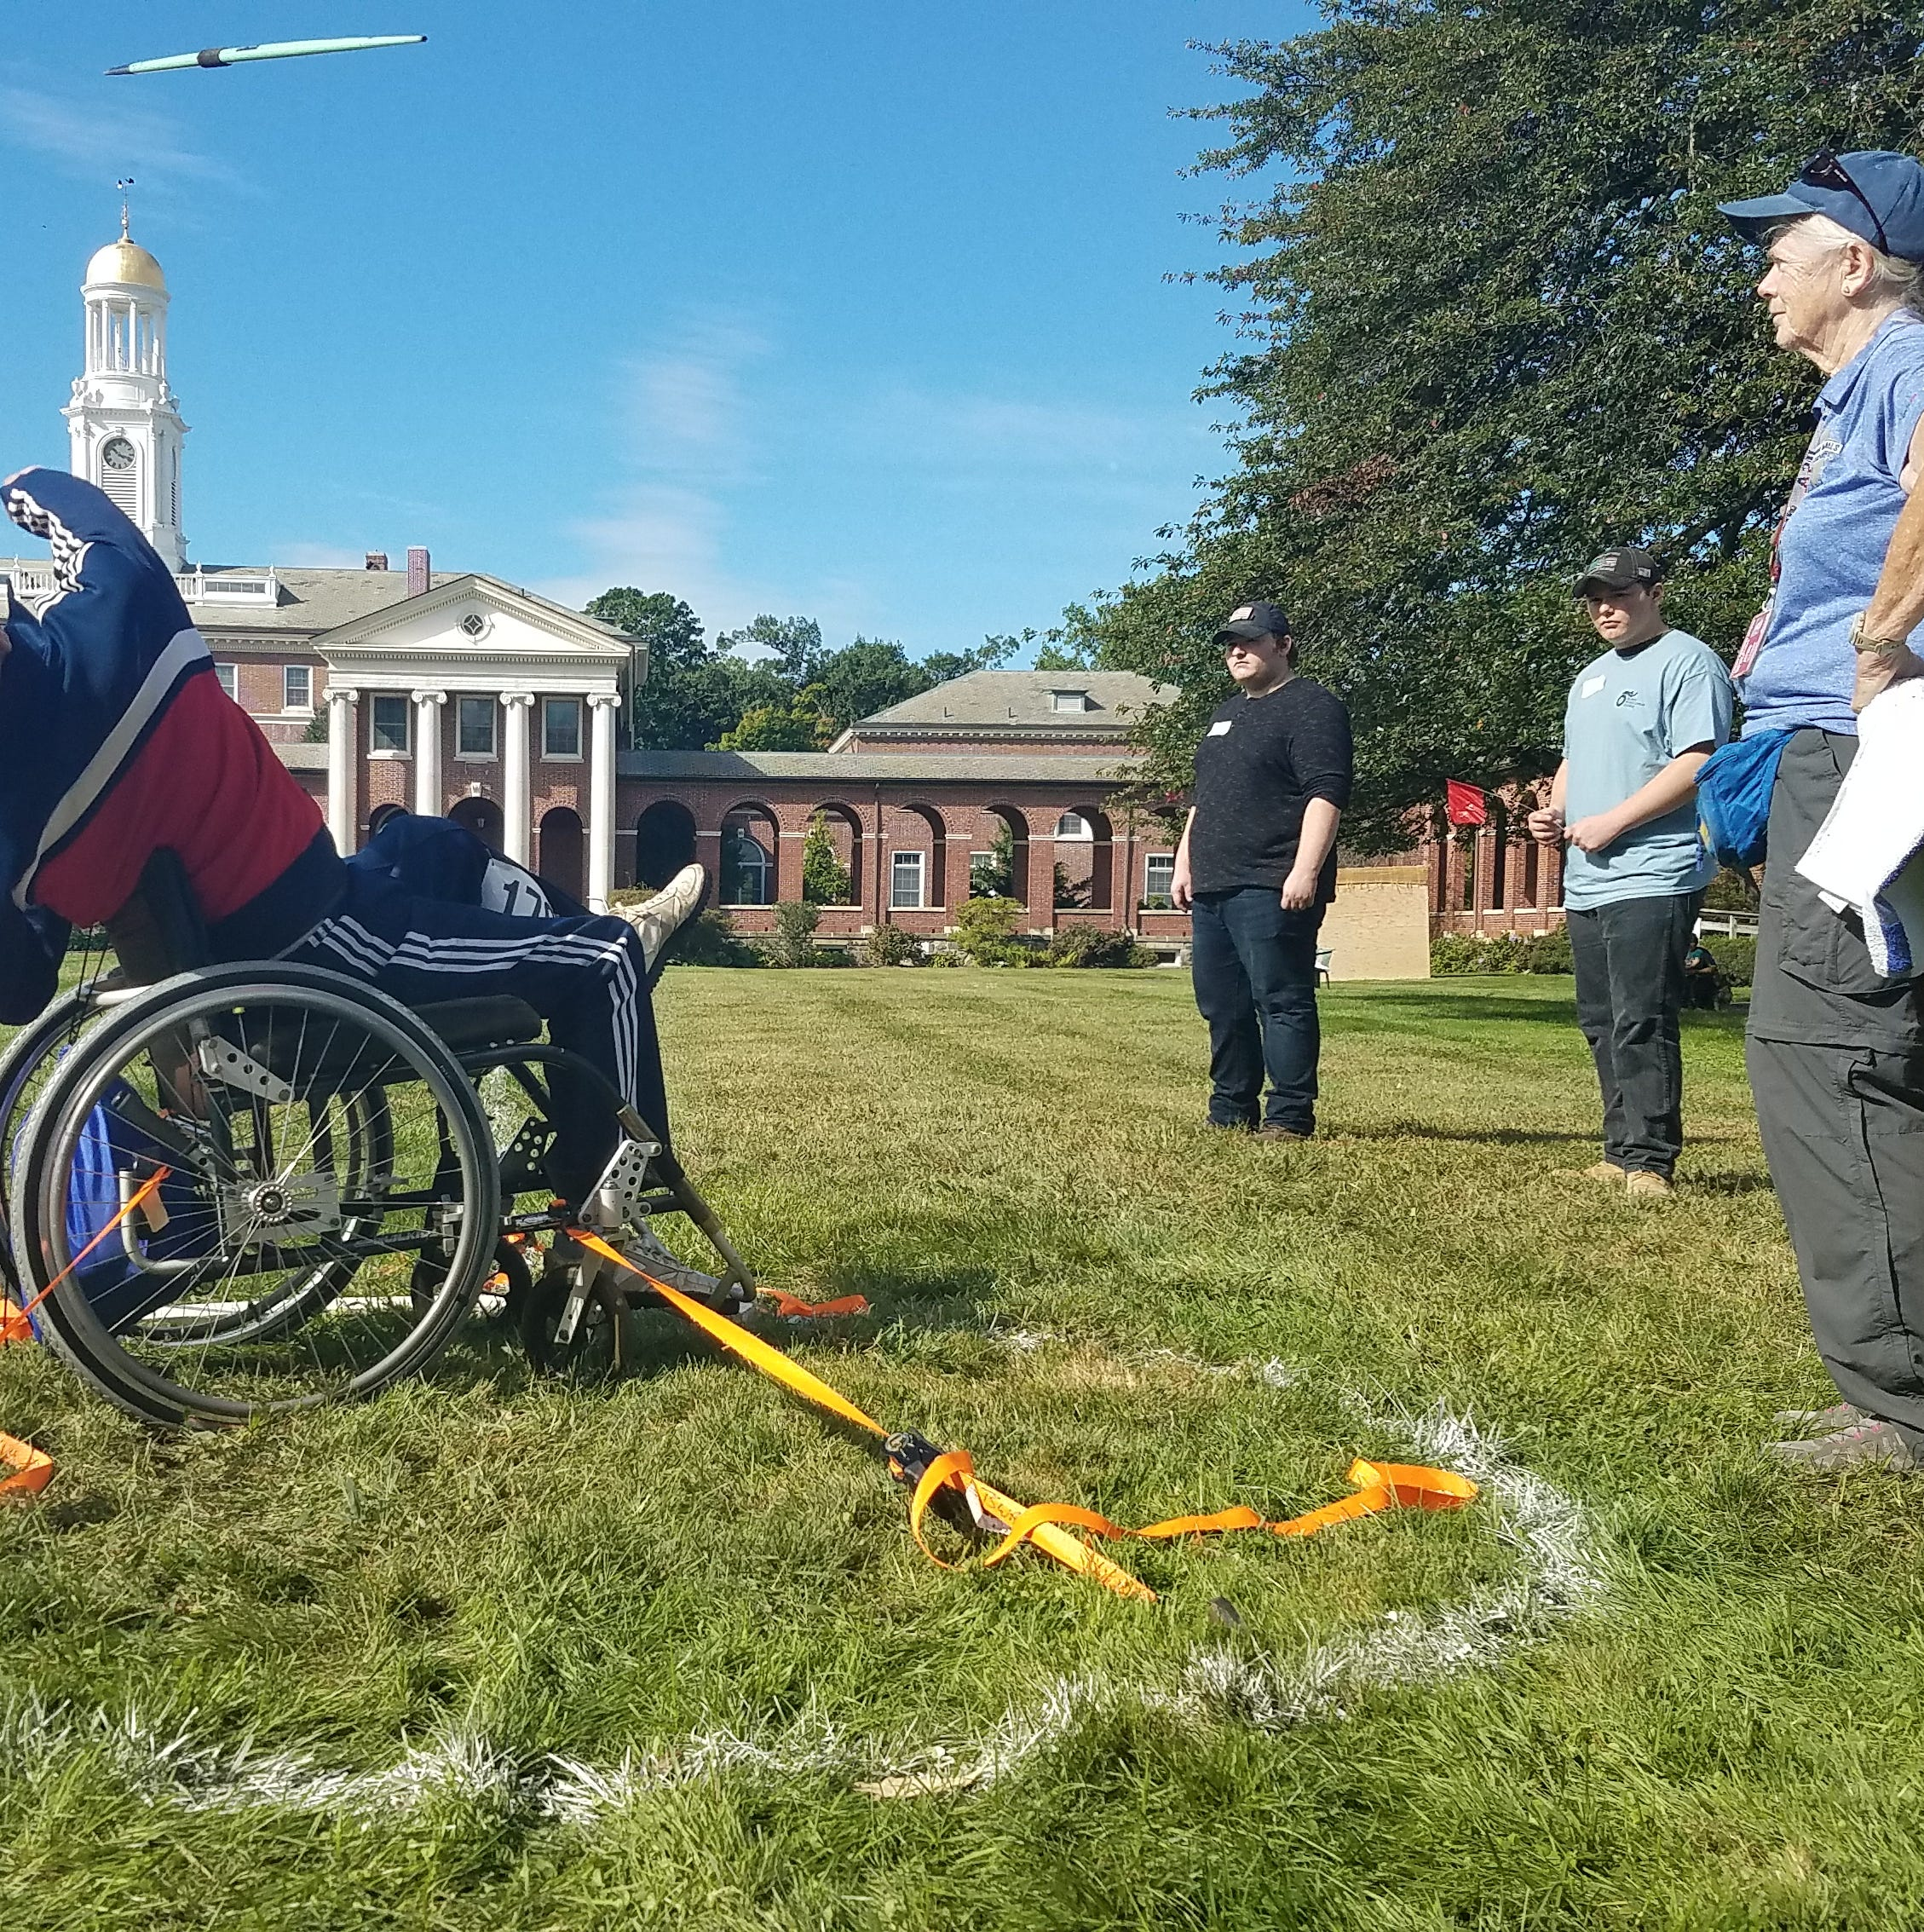 Roger Muter, 70, of Mahwah throws a javelin at the 39th annual Wheelchair Games at Burke Rehabilitation Hospital on Saturday.